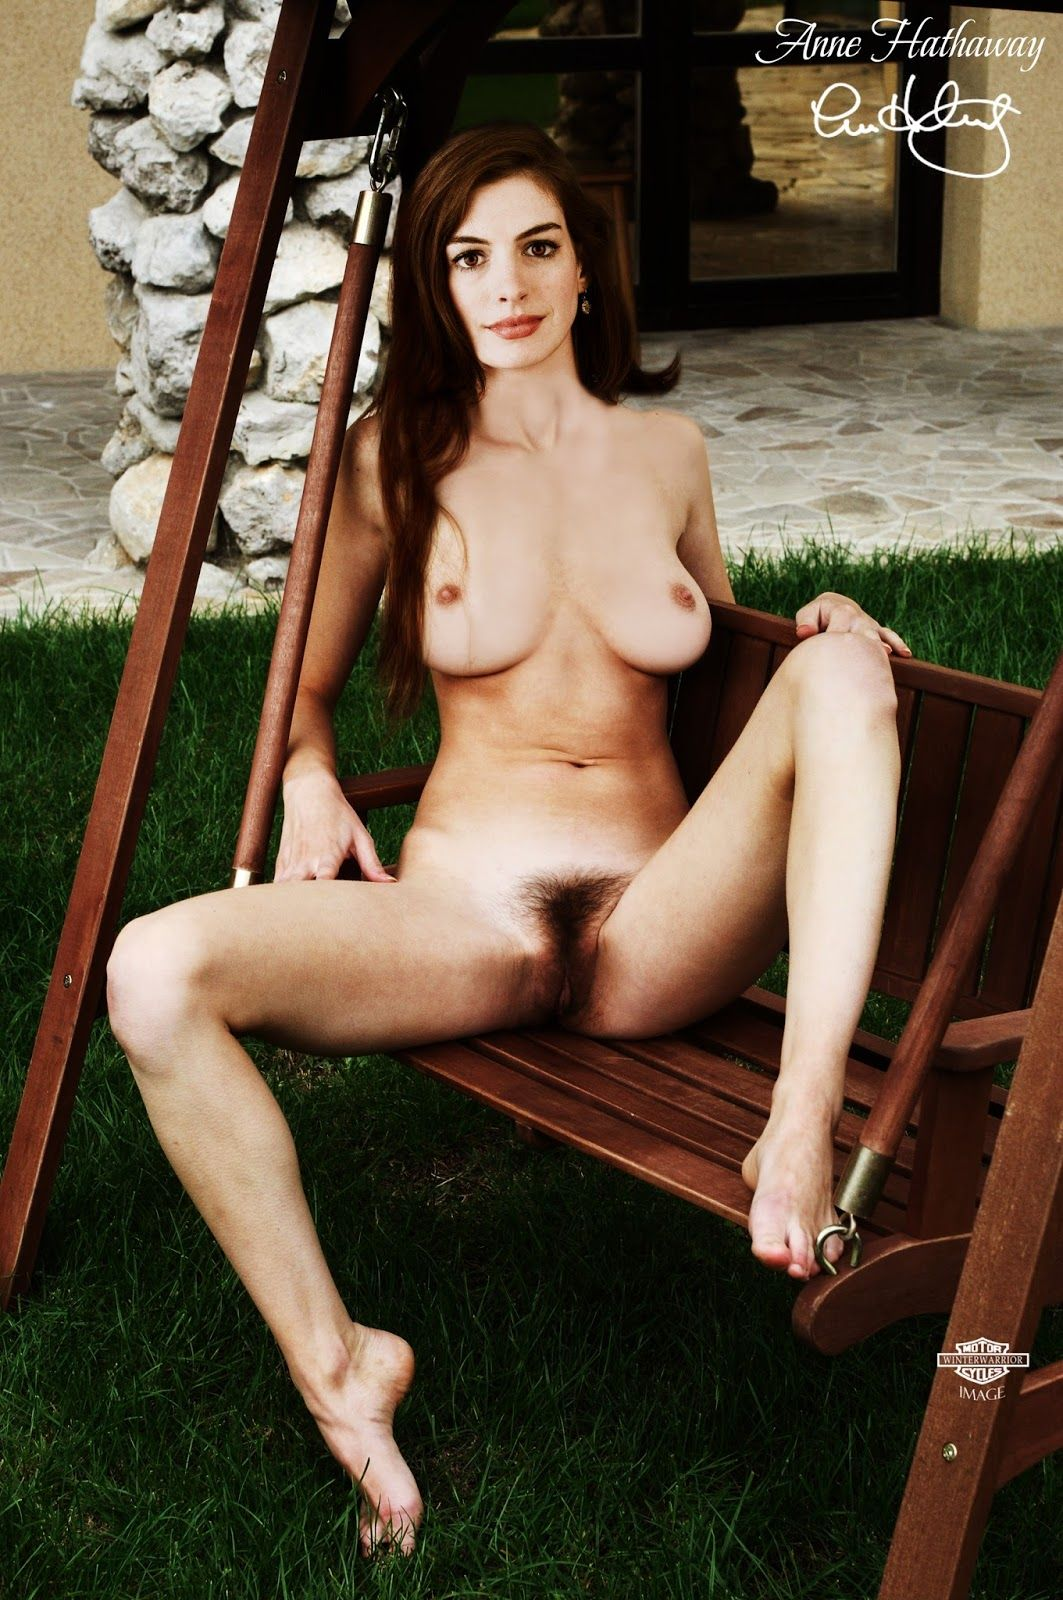 Anne hathaway naked peeing